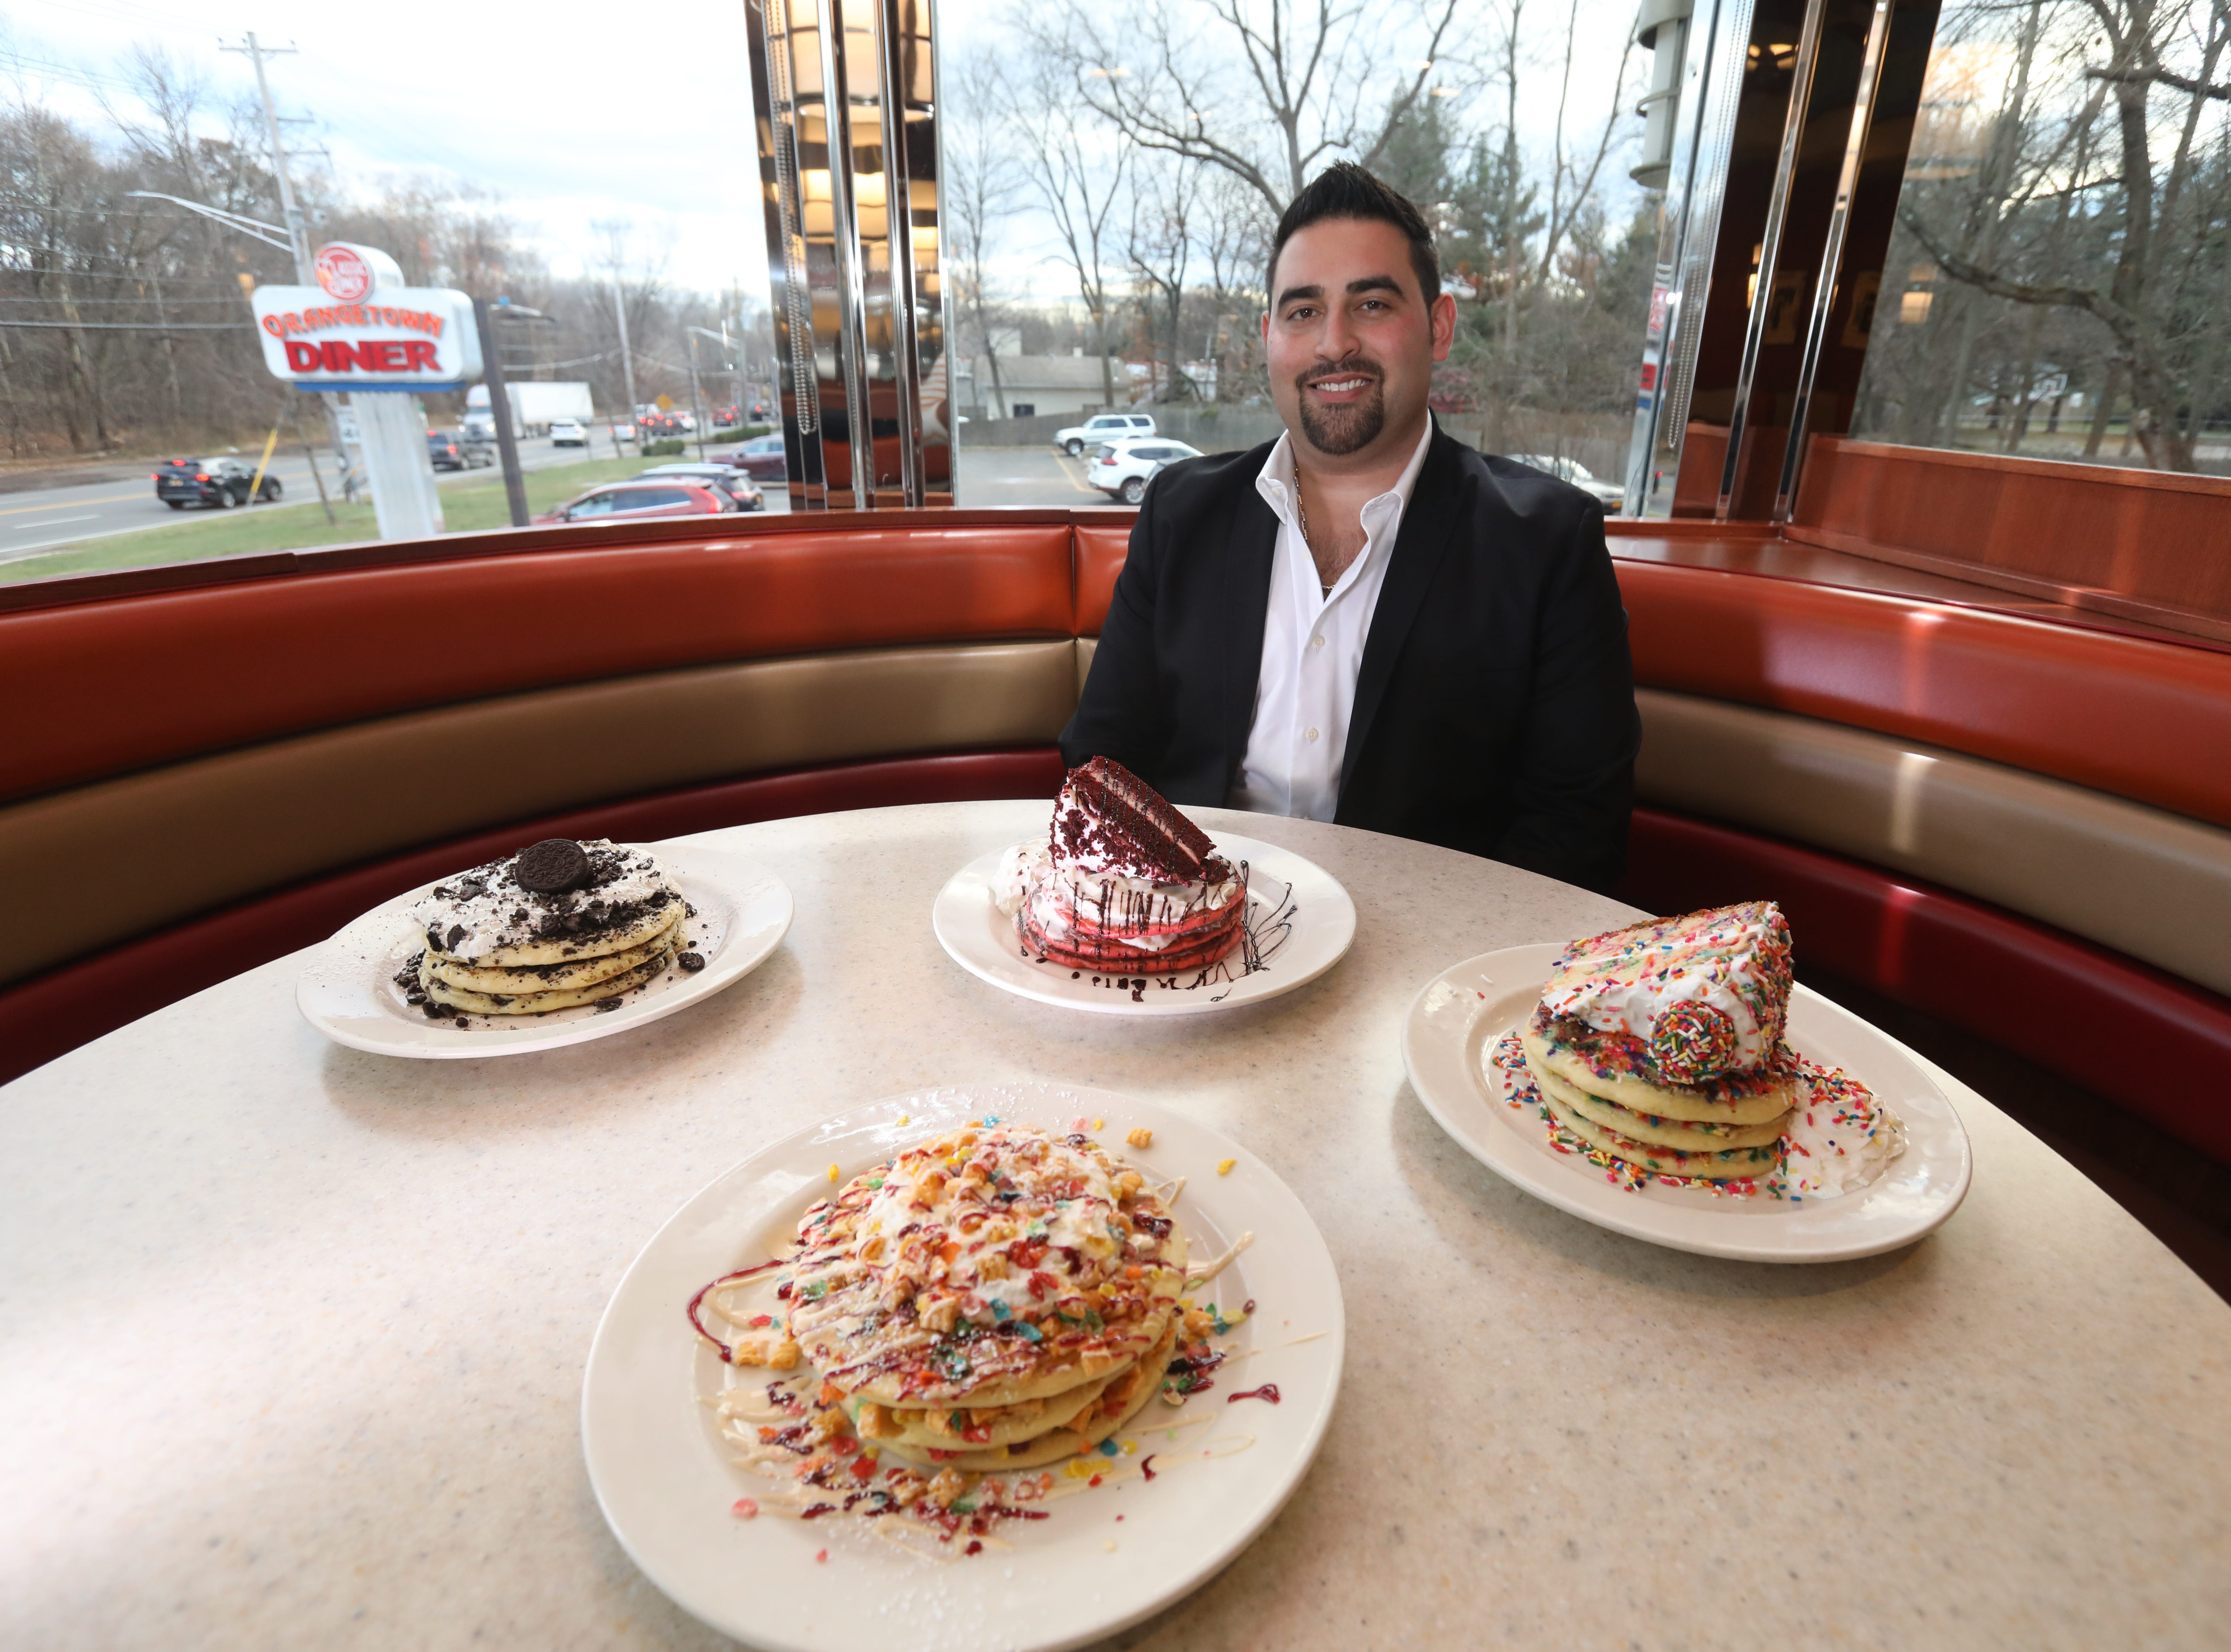 Mike Kontolios, owner of Orangeburg Classic Diner created  funfetti, Oreo, red velvet and cereal bowl versions of pancakes for his costumers at his diner Nov. 29, 2018.